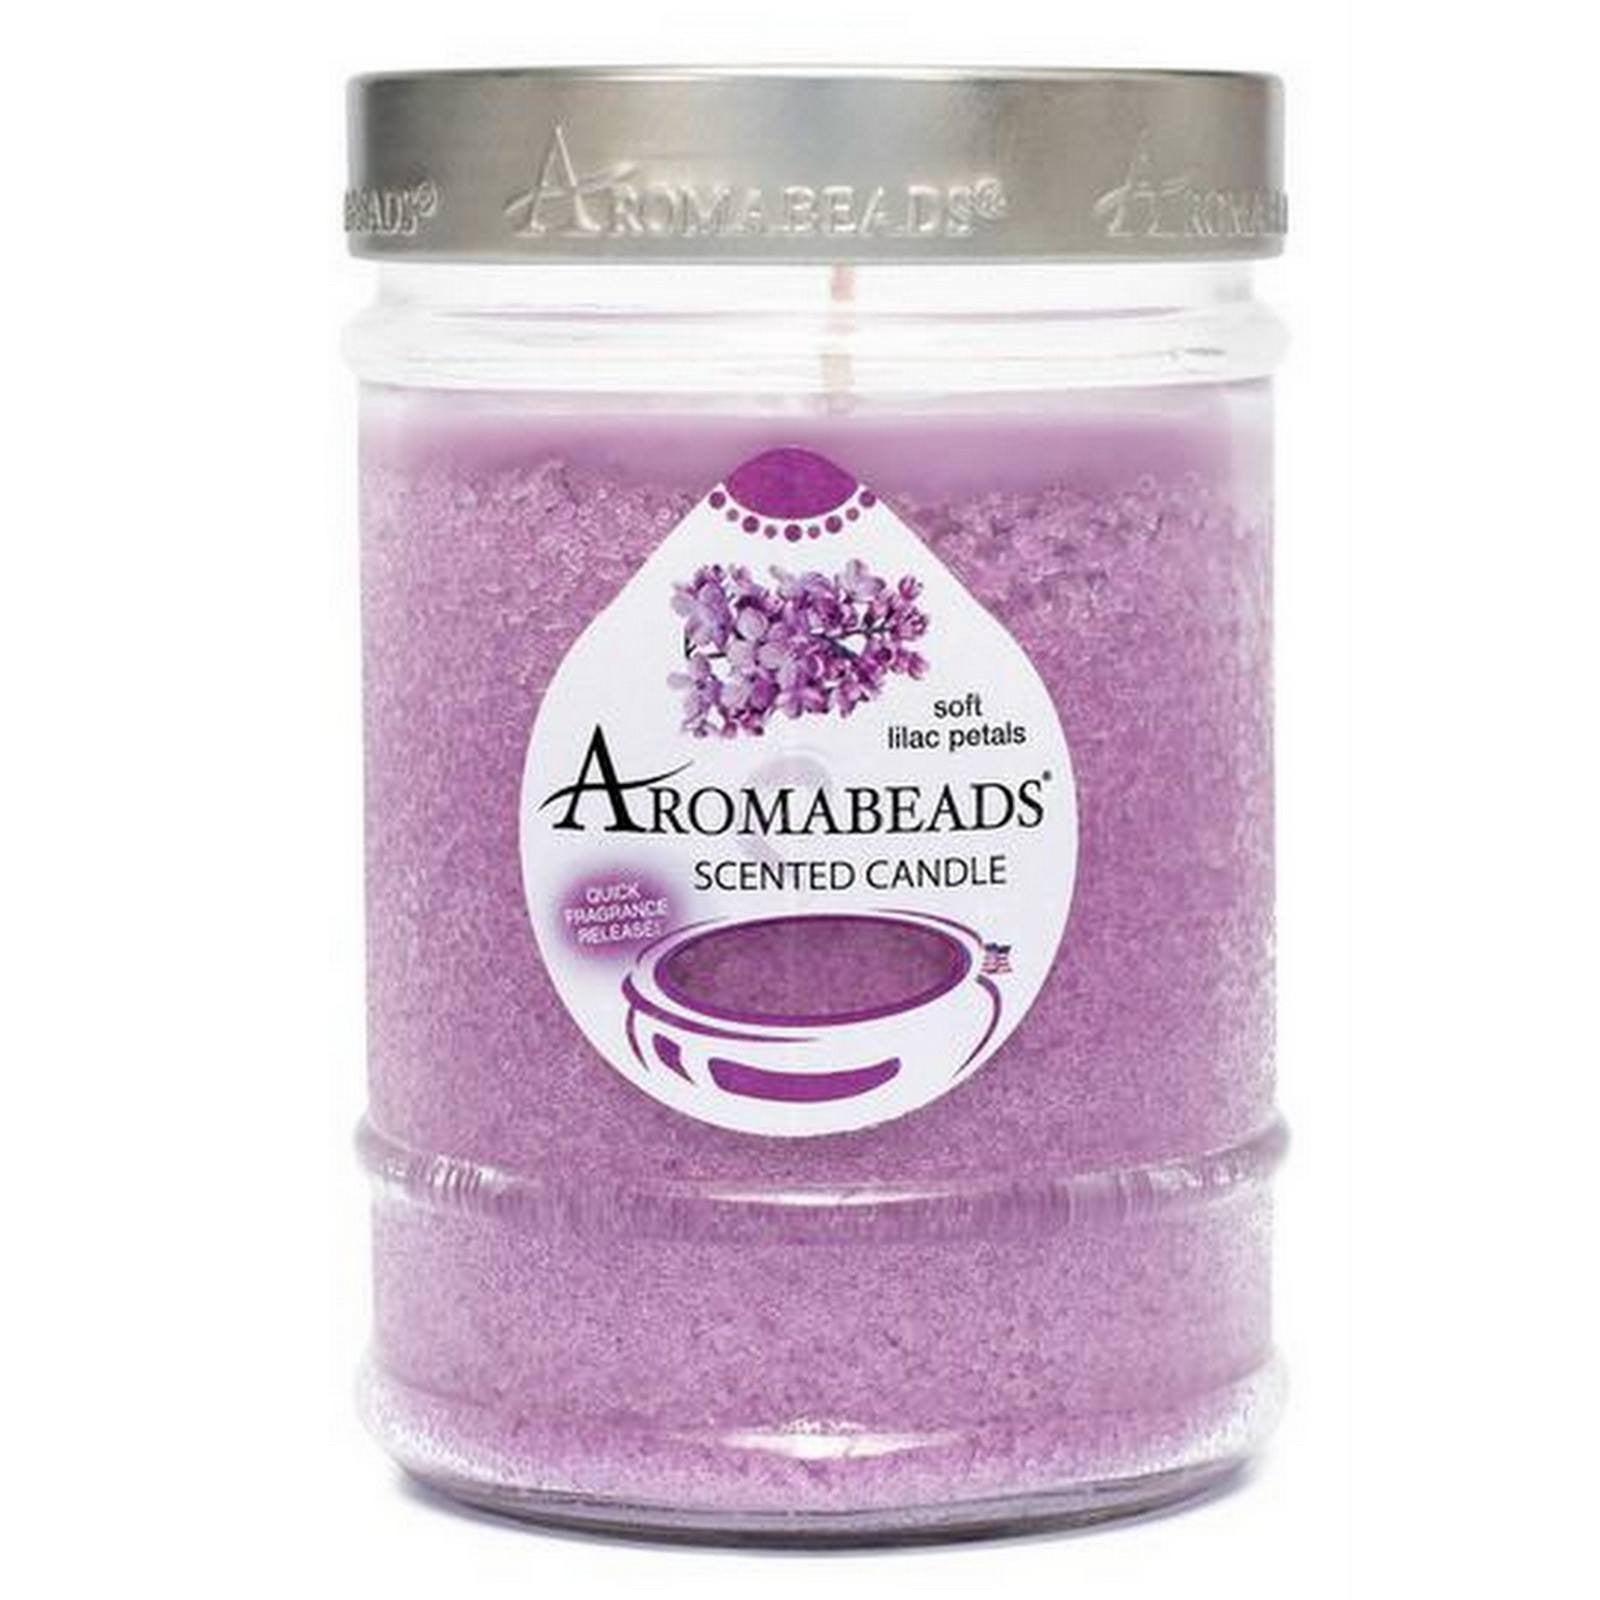 Aromabeads Soft Lilac Petals Scented Canister Candle Aromabeads Candlemart.com $ 4.49